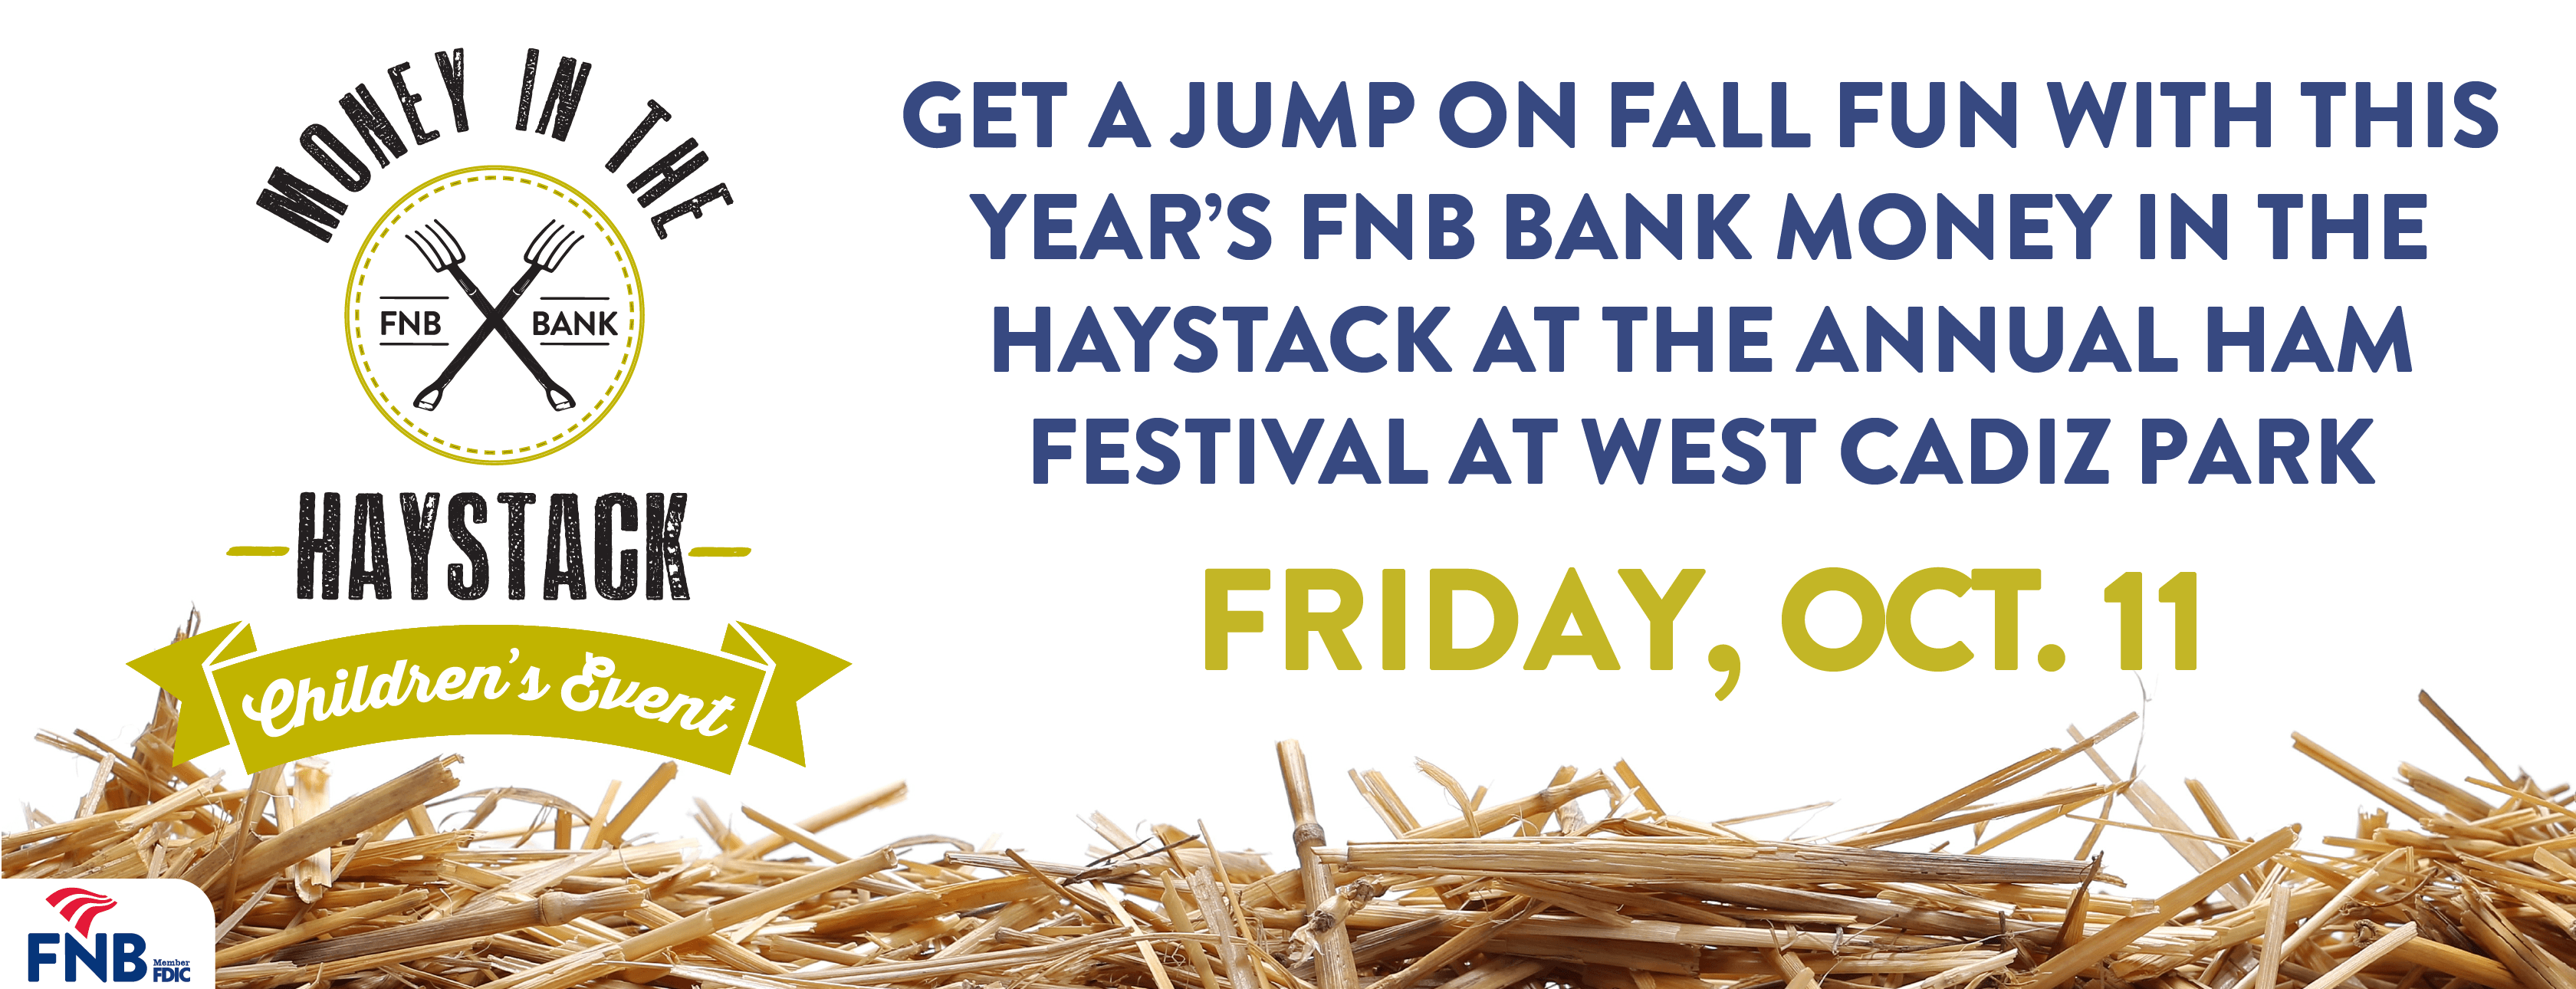 FNB Money in the Haystack Event at Ham Festival